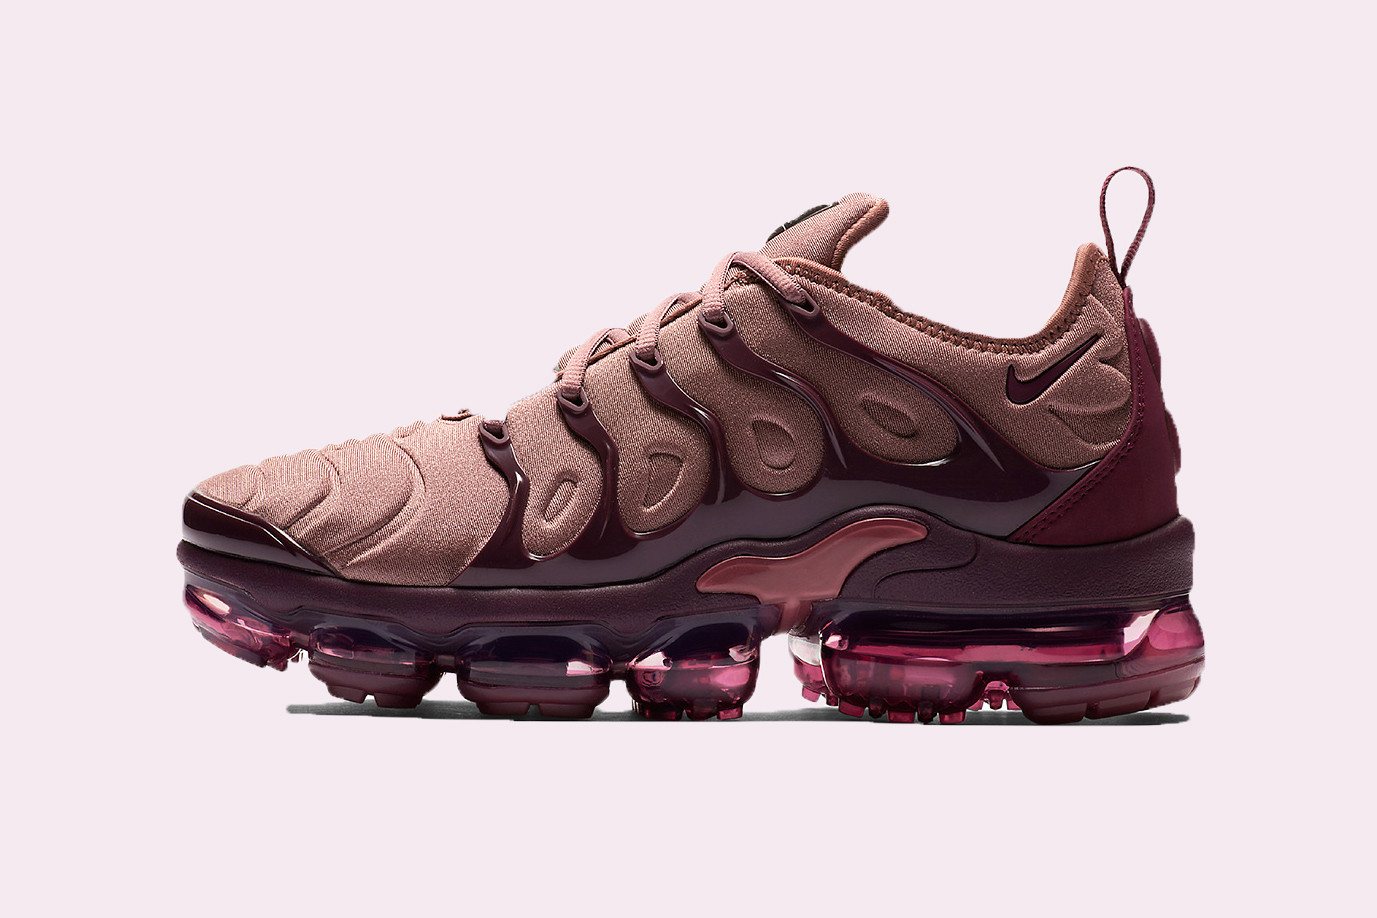 Air VaporMax Plus in Mauve and Burgundy